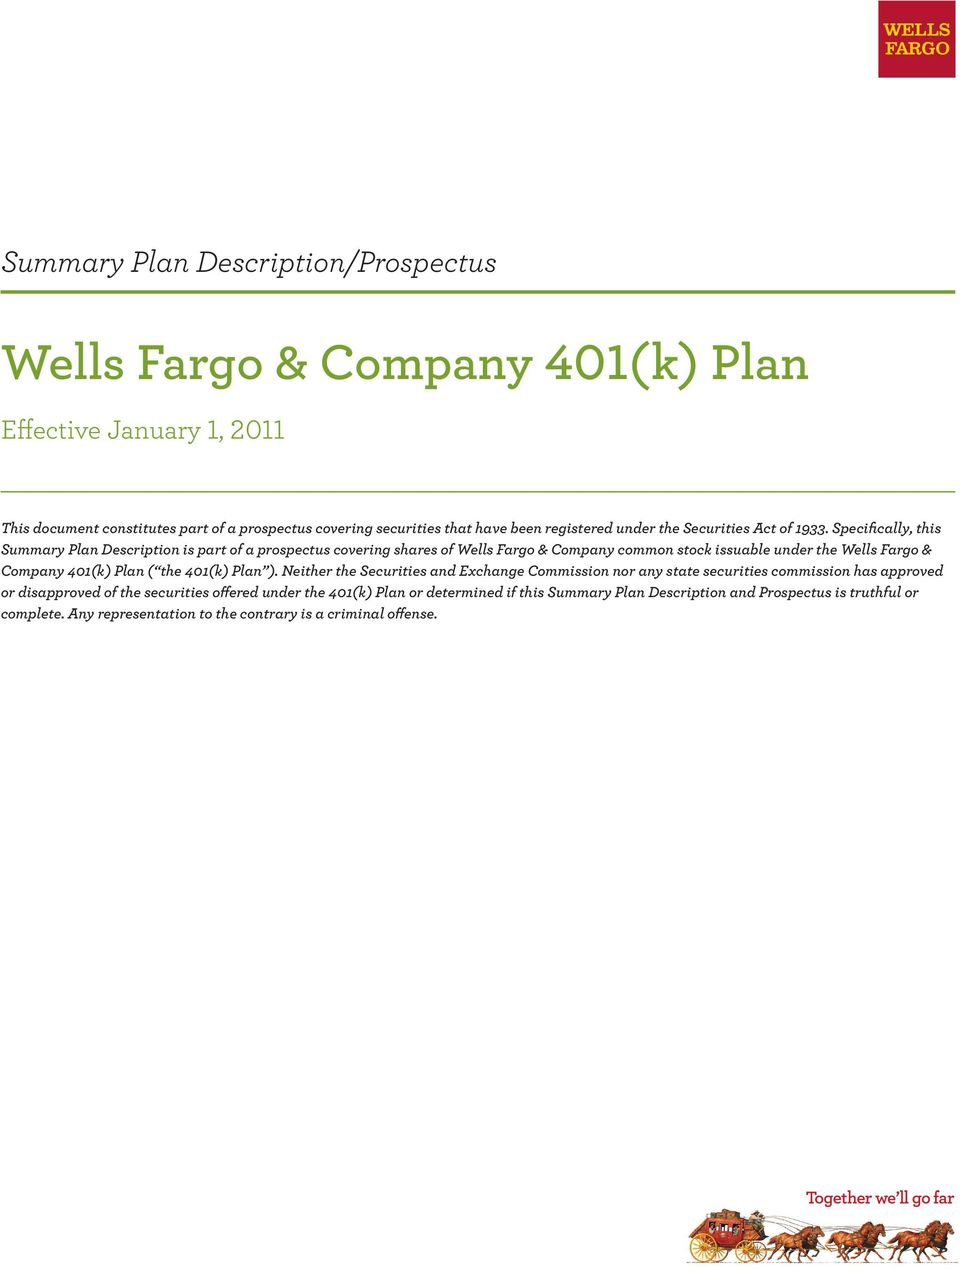 Specifically, this Summary Plan Description is part of a prospectus covering shares of Wells Fargo & Company common stock issuable under the Wells Fargo & Company 401(k) Plan ( the